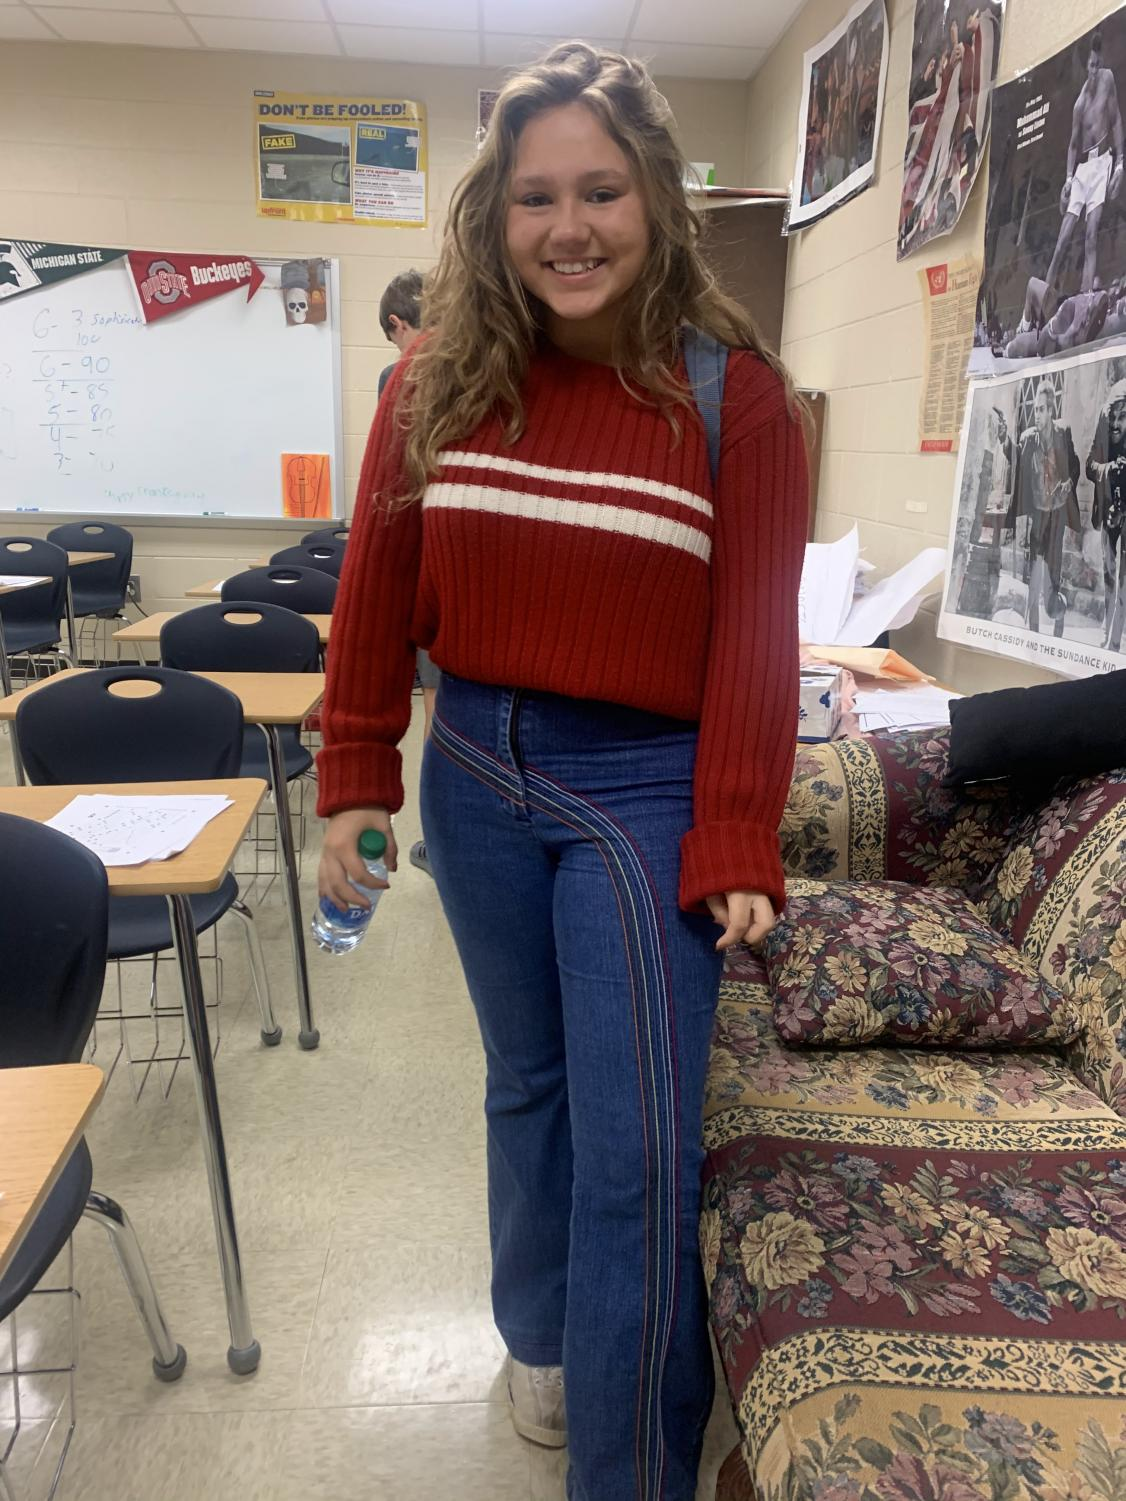 Junior Jessie Smith says her style is inspired by old and vintage TV shows.